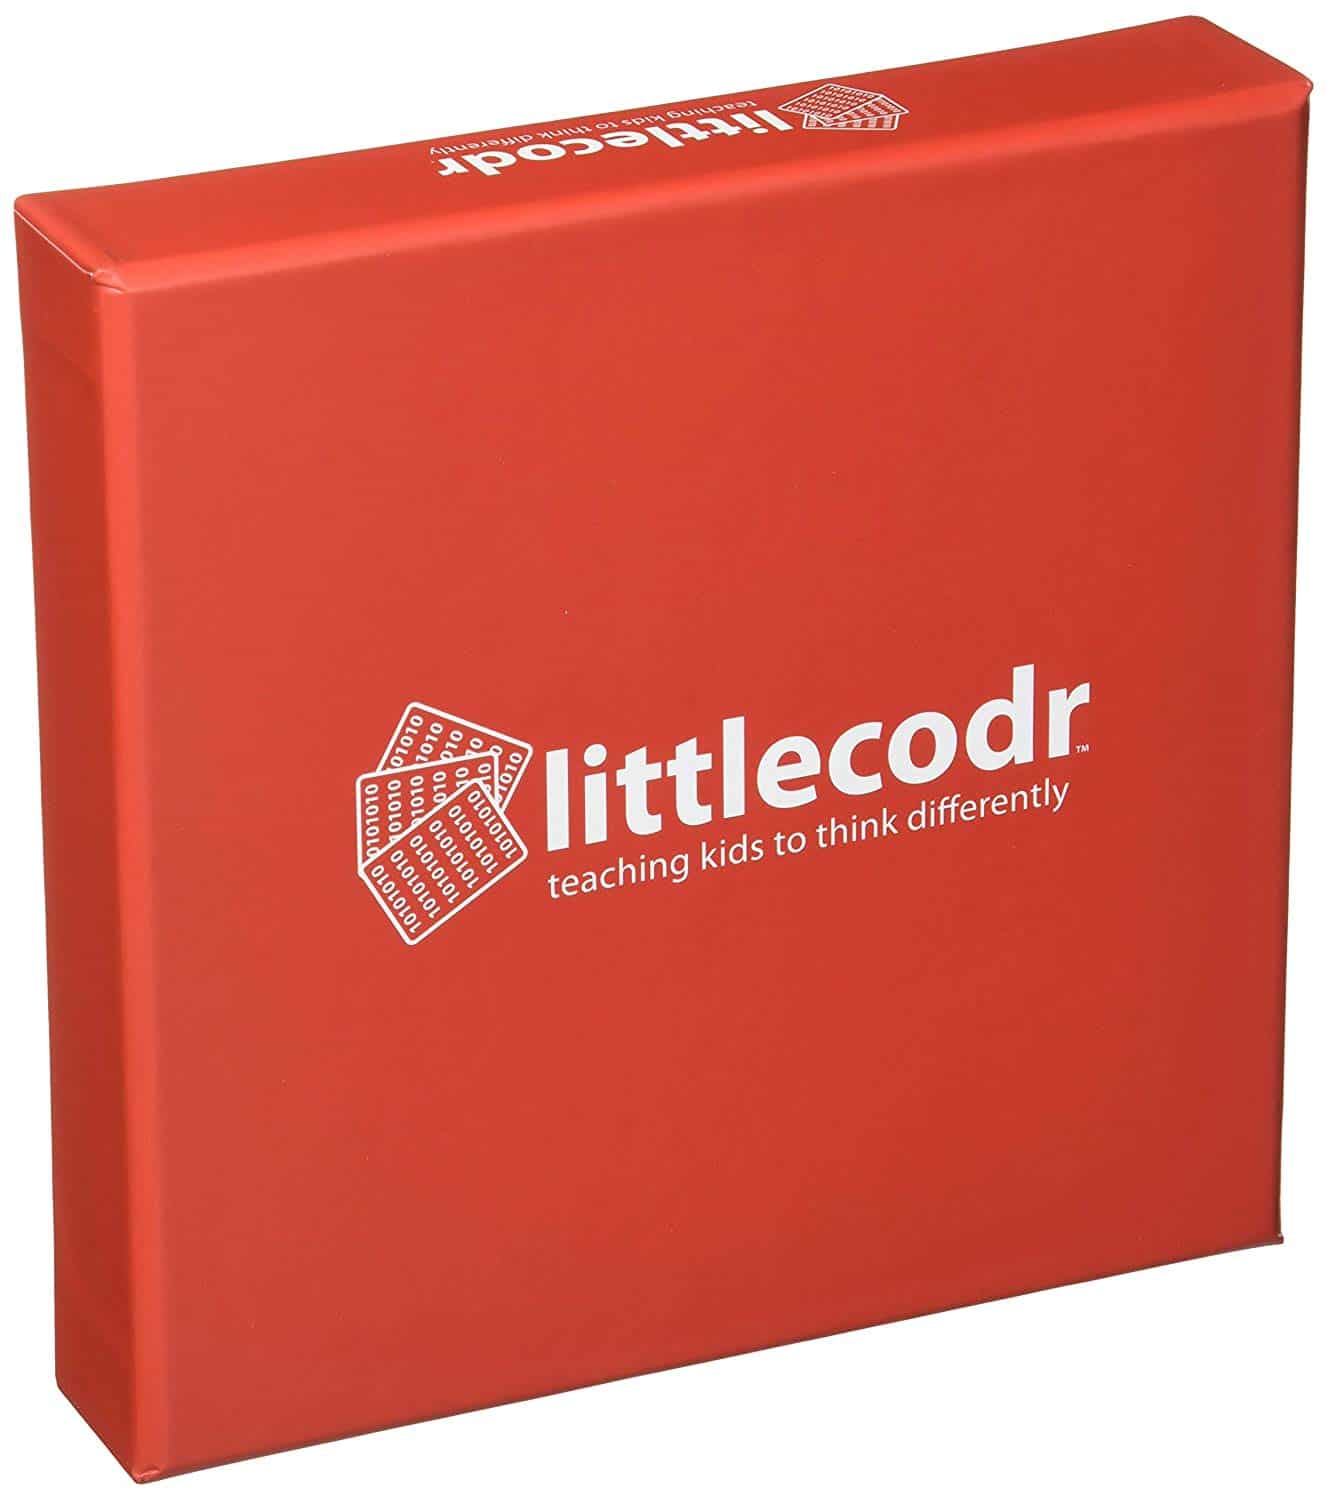 Little codr kinderspel om te leren coderen